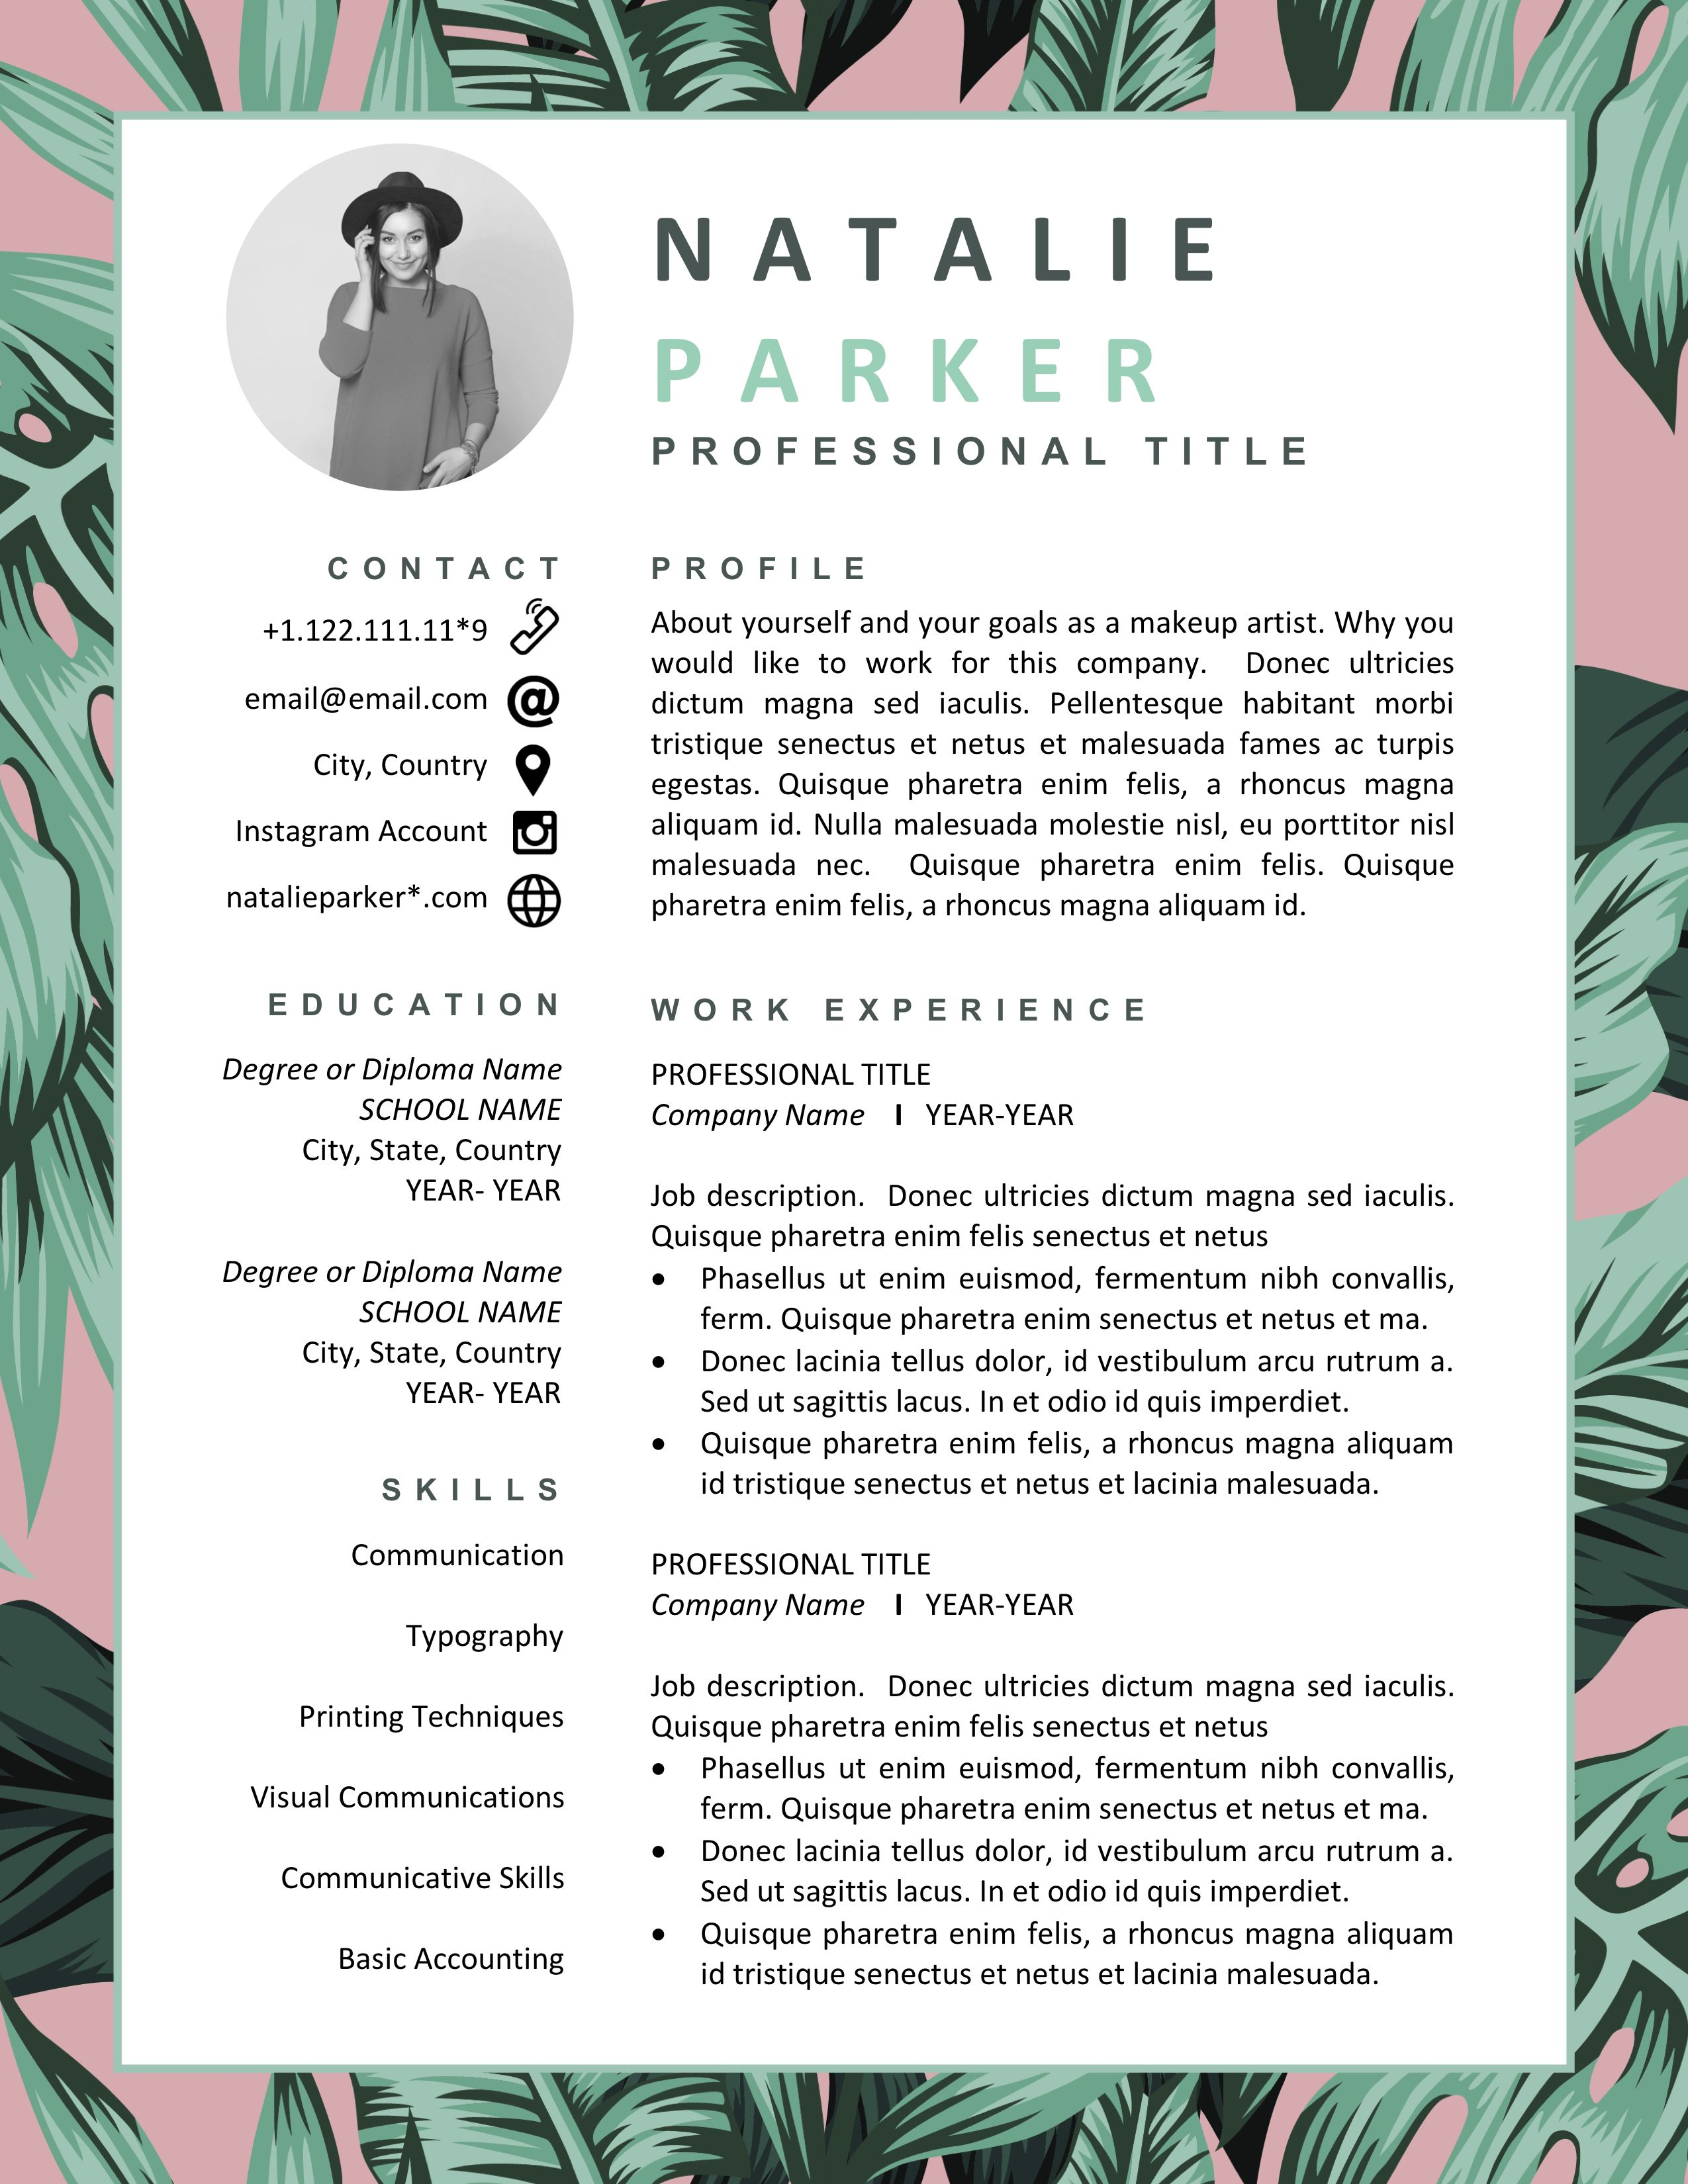 Creative Cv Template For Word Pages Floral Resume Templates Cover Letter Instant Download Resumes Best Cv For Stylist Blogger Artist Fashion Designer Resume Resume Design Creative Resume Design